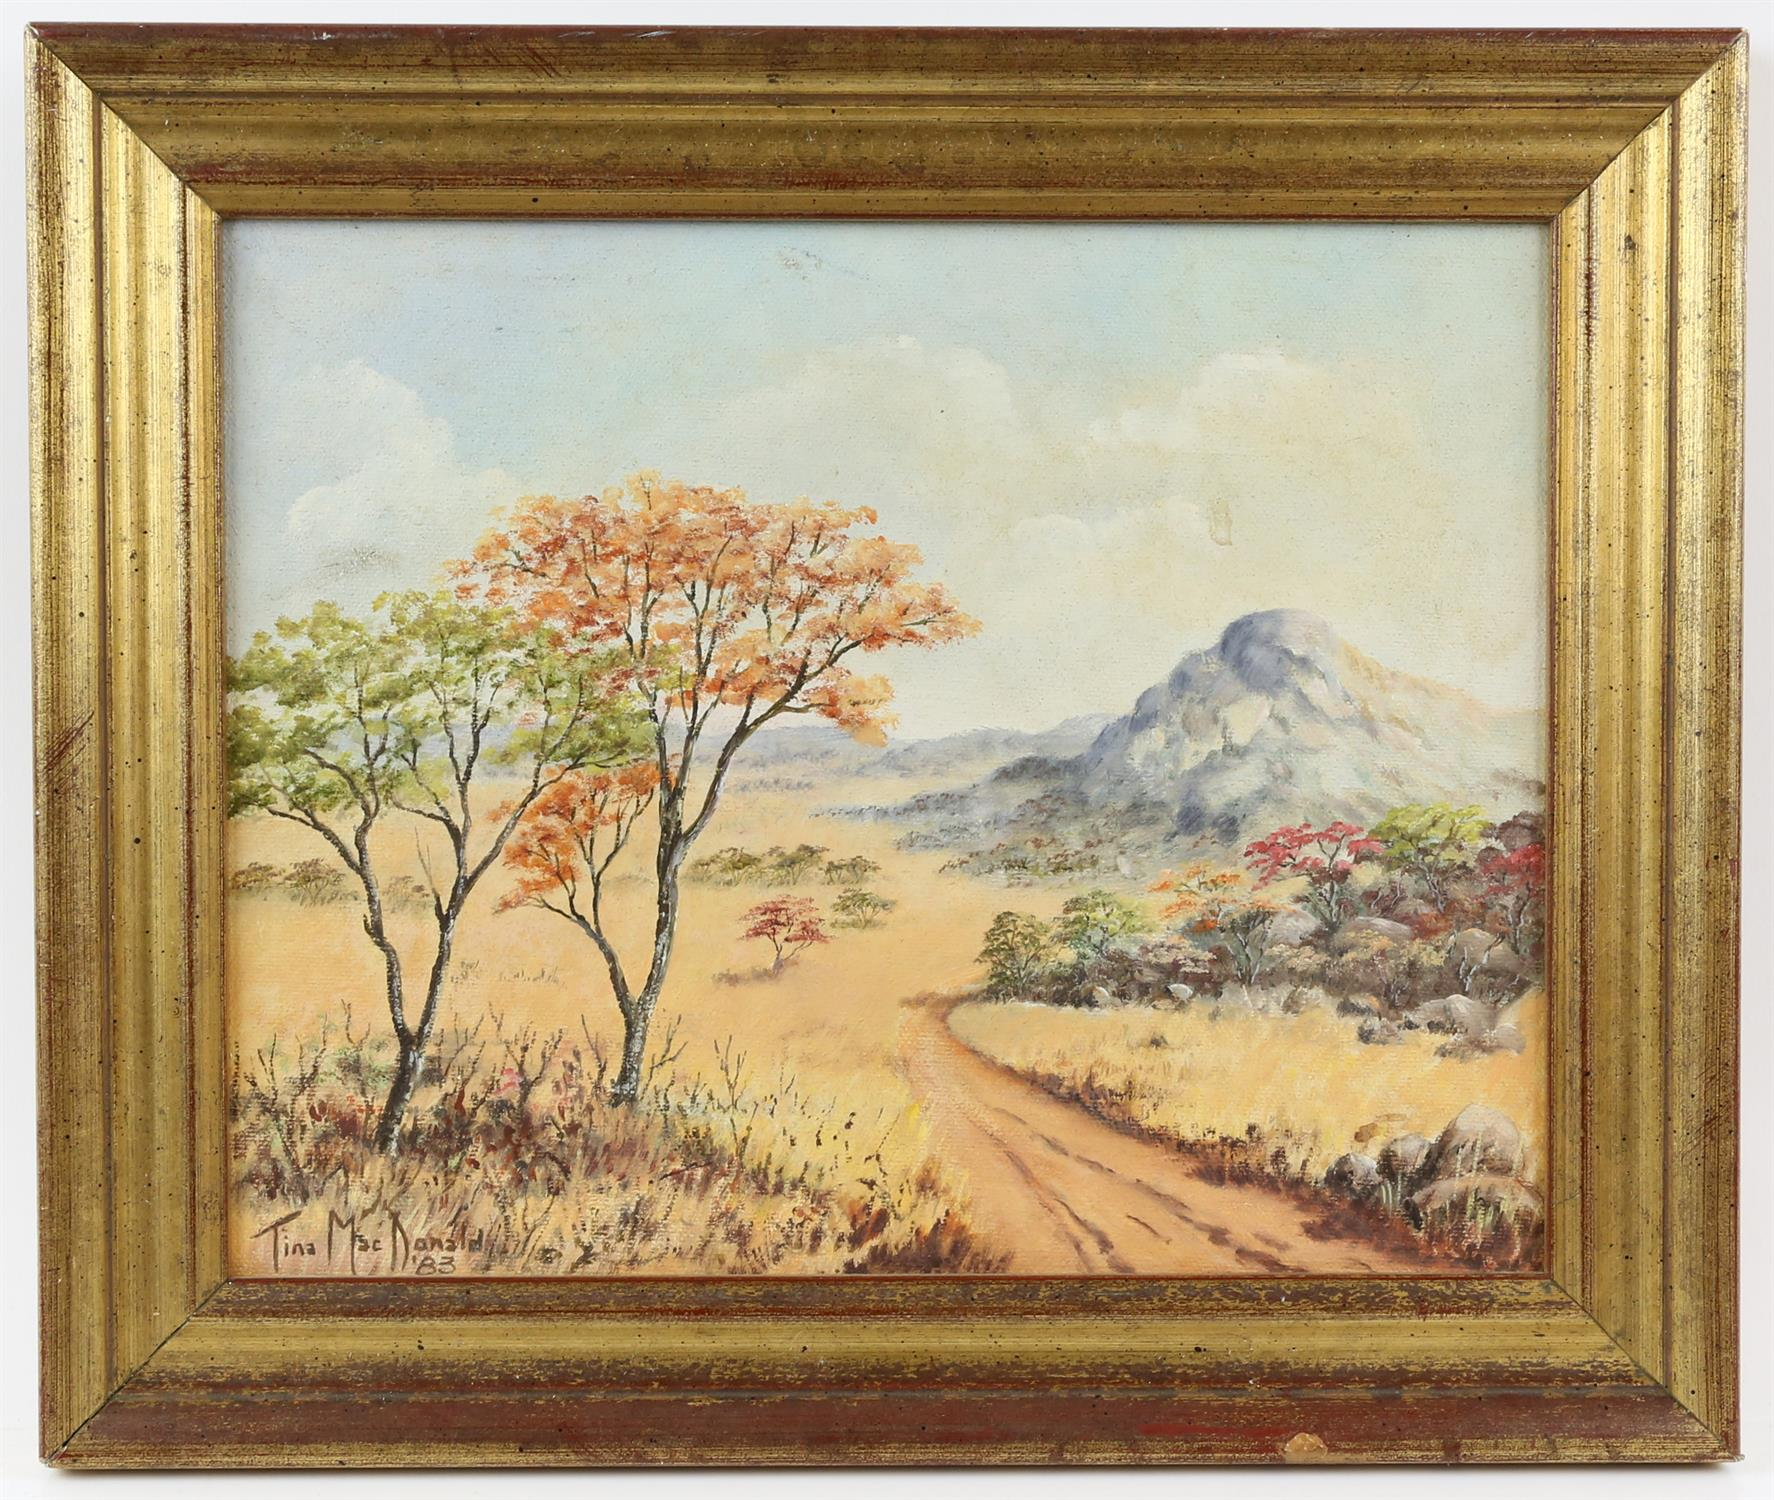 Tina MacDonald, Australian 20th century, landscape with hills and trees, signed and dated '83, - Image 2 of 3